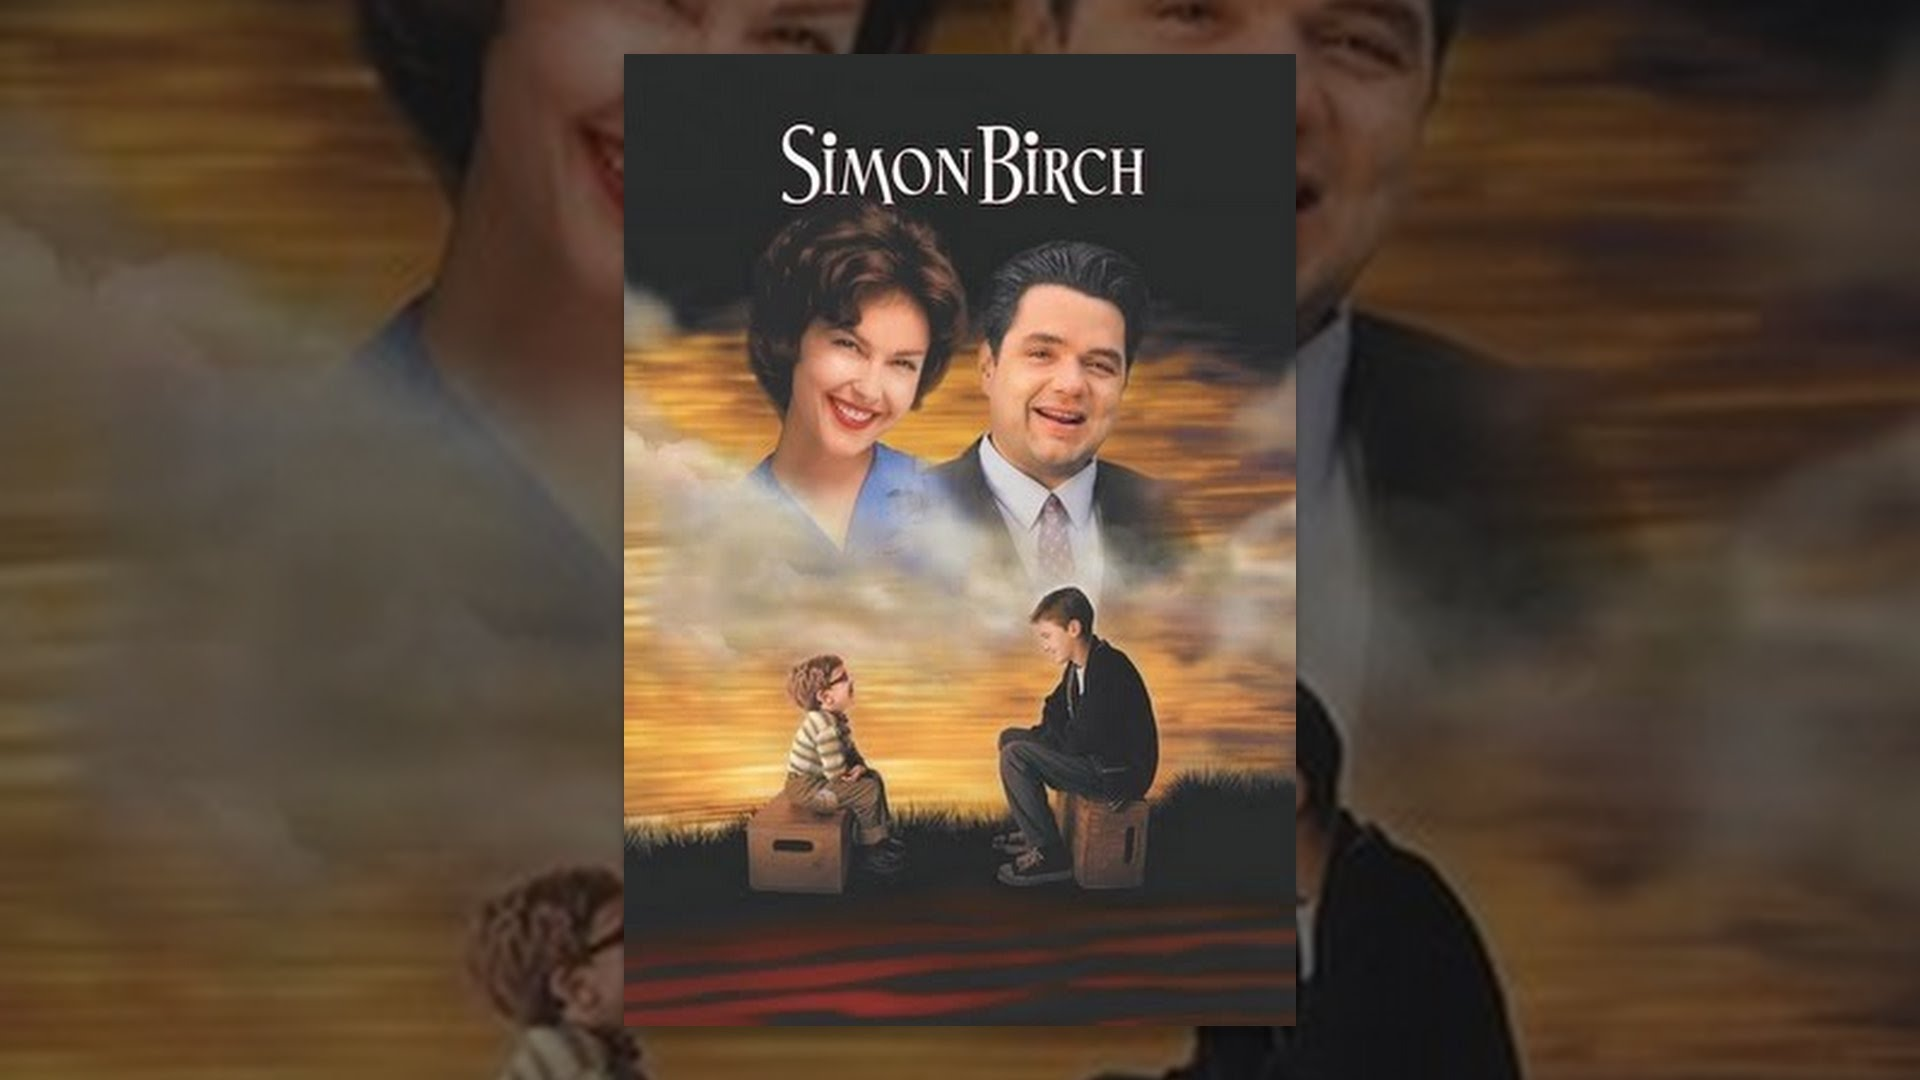 Movie about burch midget